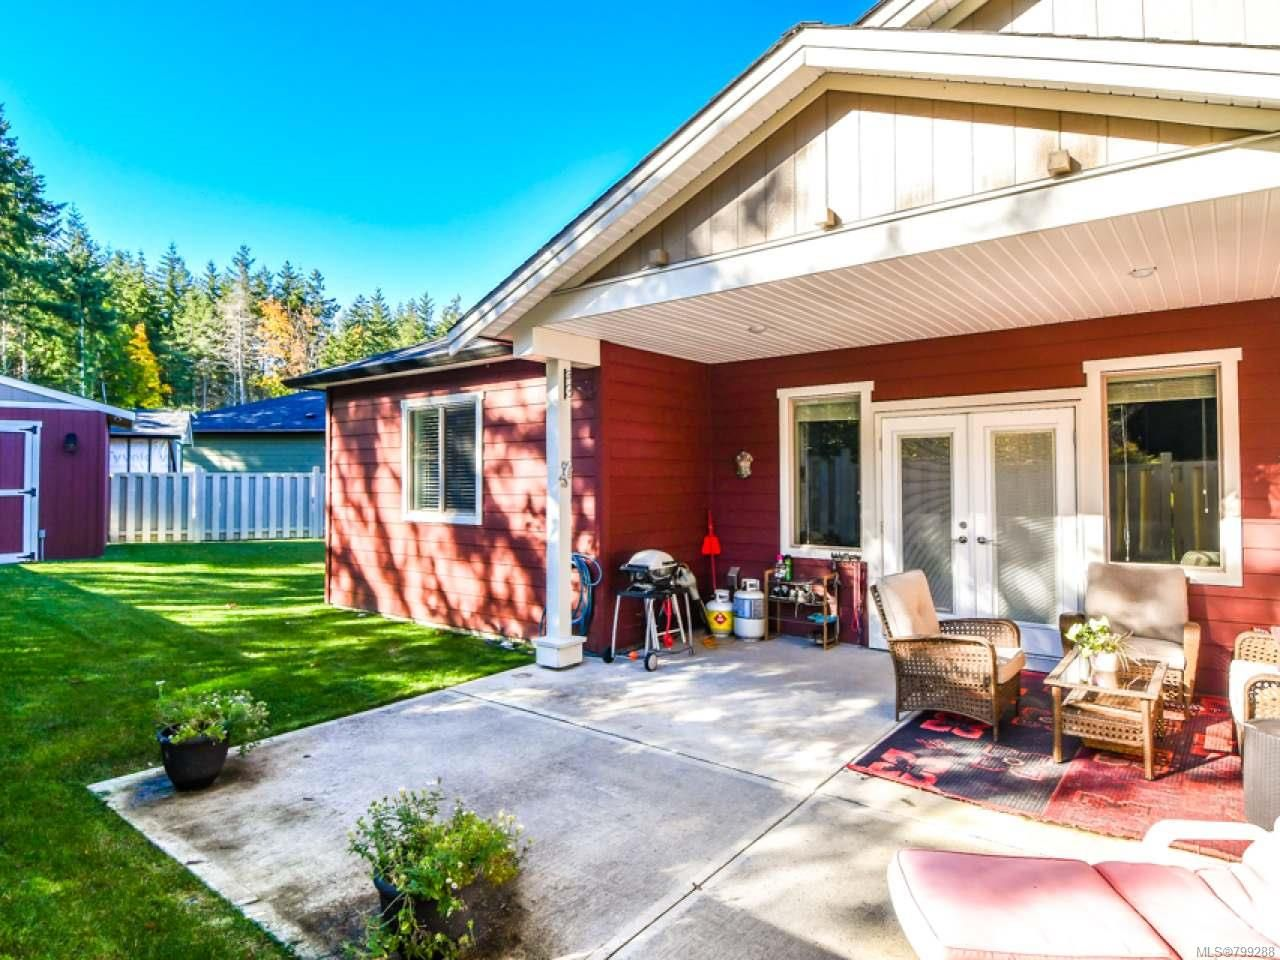 Photo 11: Photos: 11 301 Arizona Dr in CAMPBELL RIVER: CR Willow Point Half Duplex for sale (Campbell River)  : MLS®# 799288